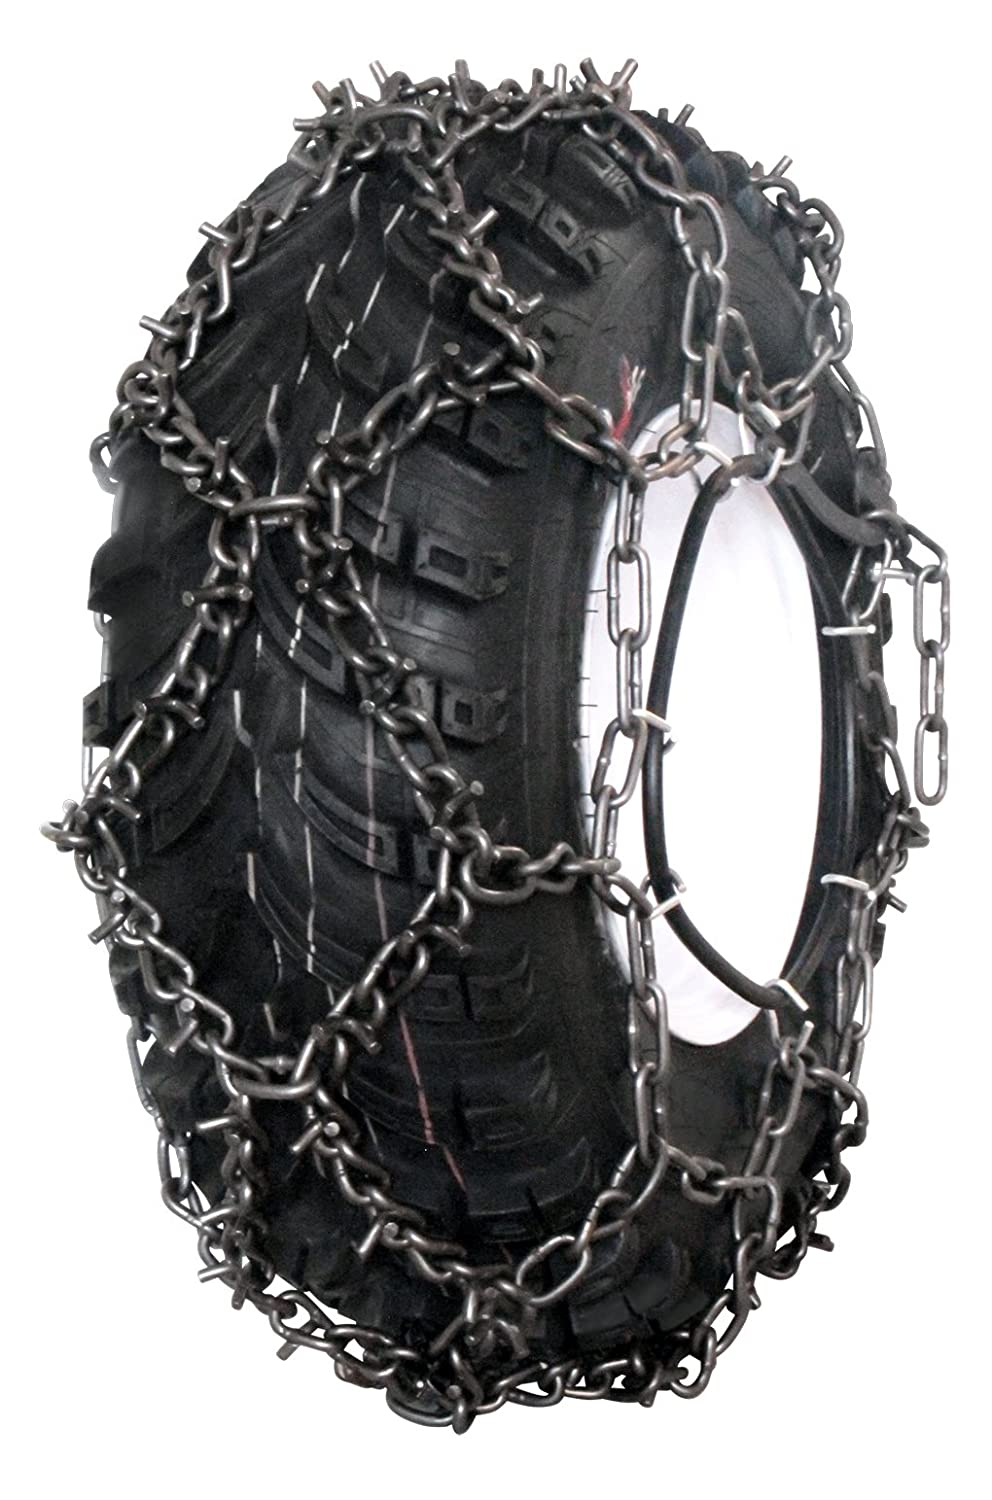 Grizzlar GTN-716 ATV Diamond Studded/ Tire Chains 25x12-9 26x11-15 26x11-14 25x12-10 26x11-12 25x12-12 25x12.5-12 25x12-11